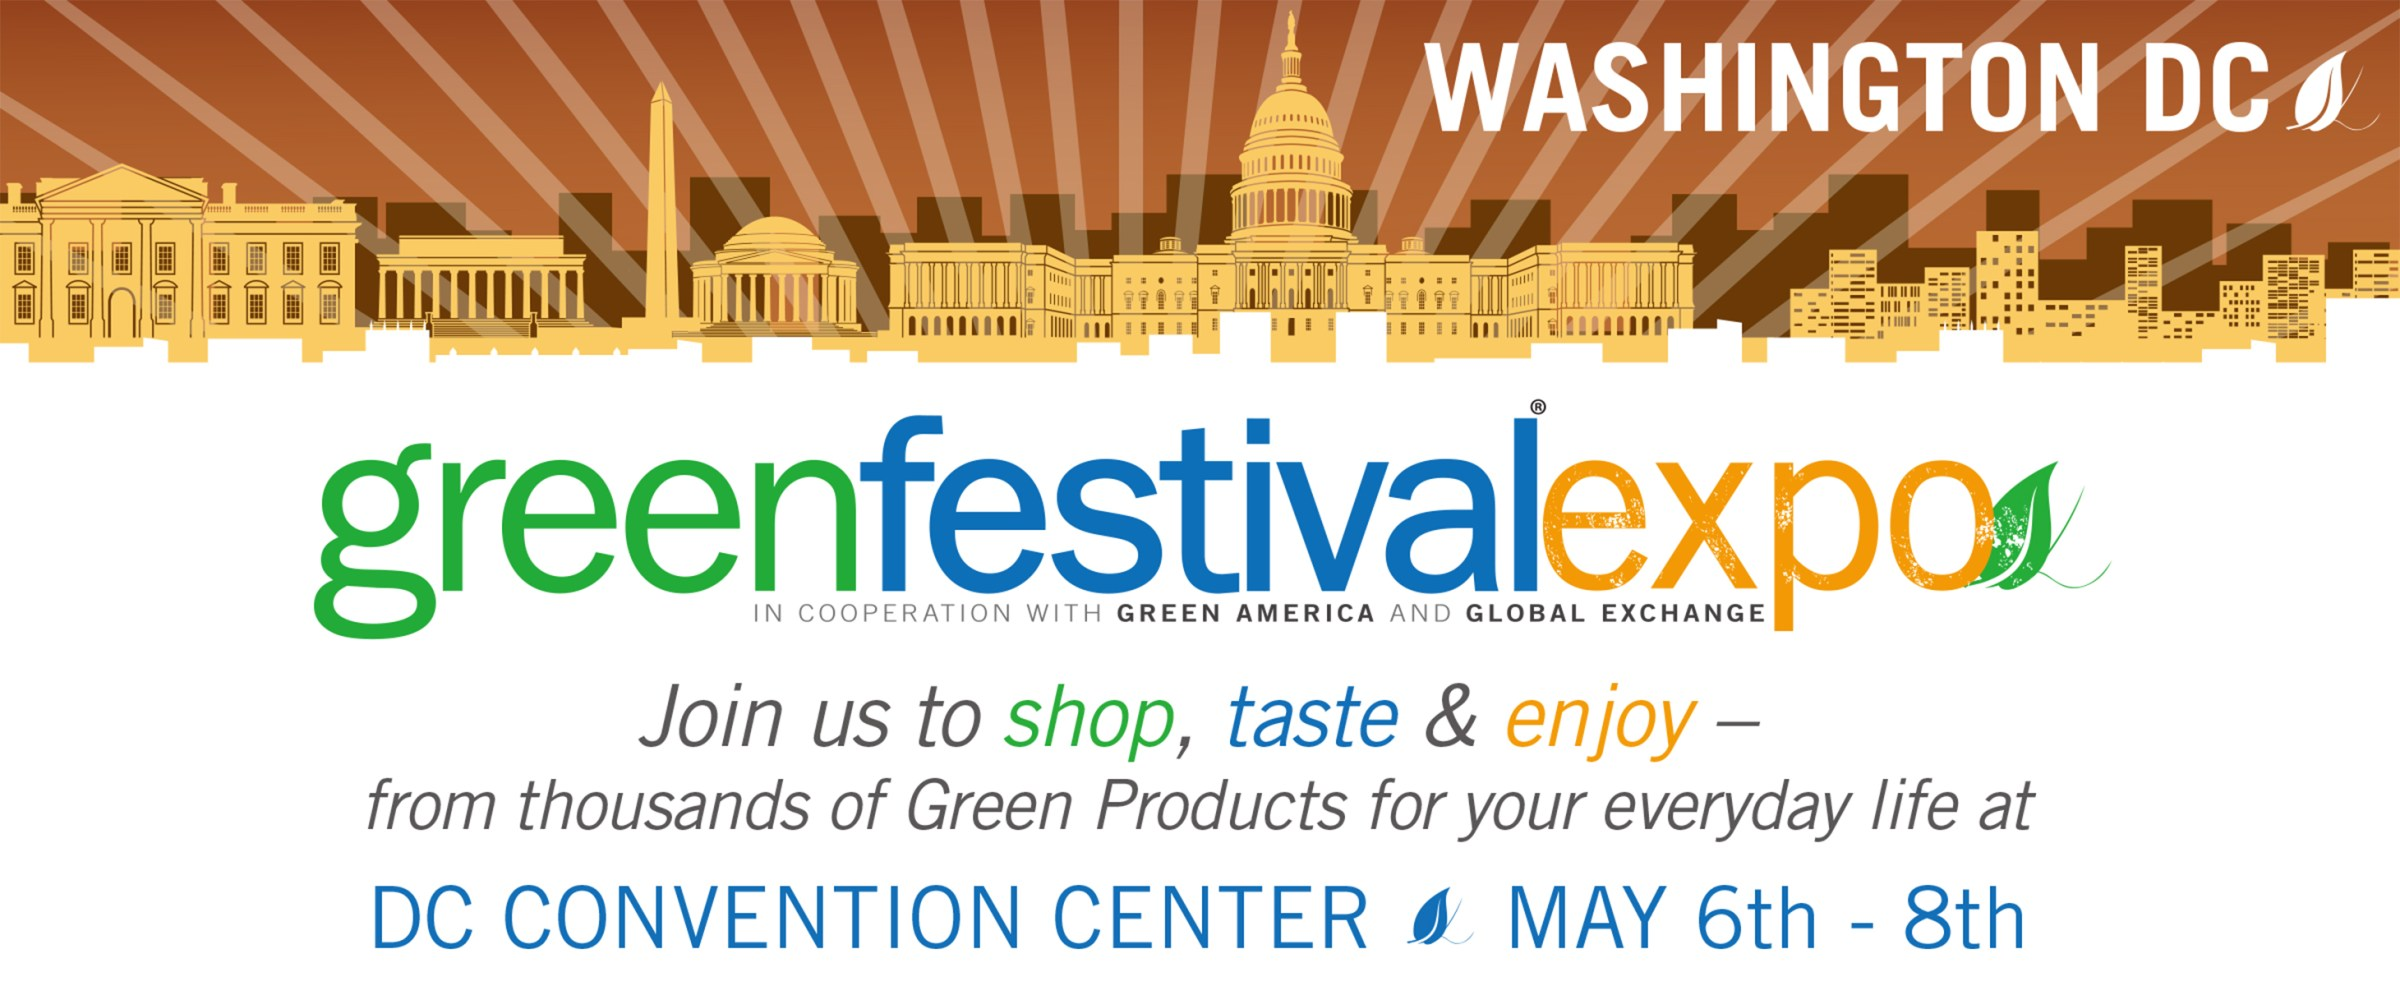 Vote for Washington Parks & People in the Green Festival Community Award Contest